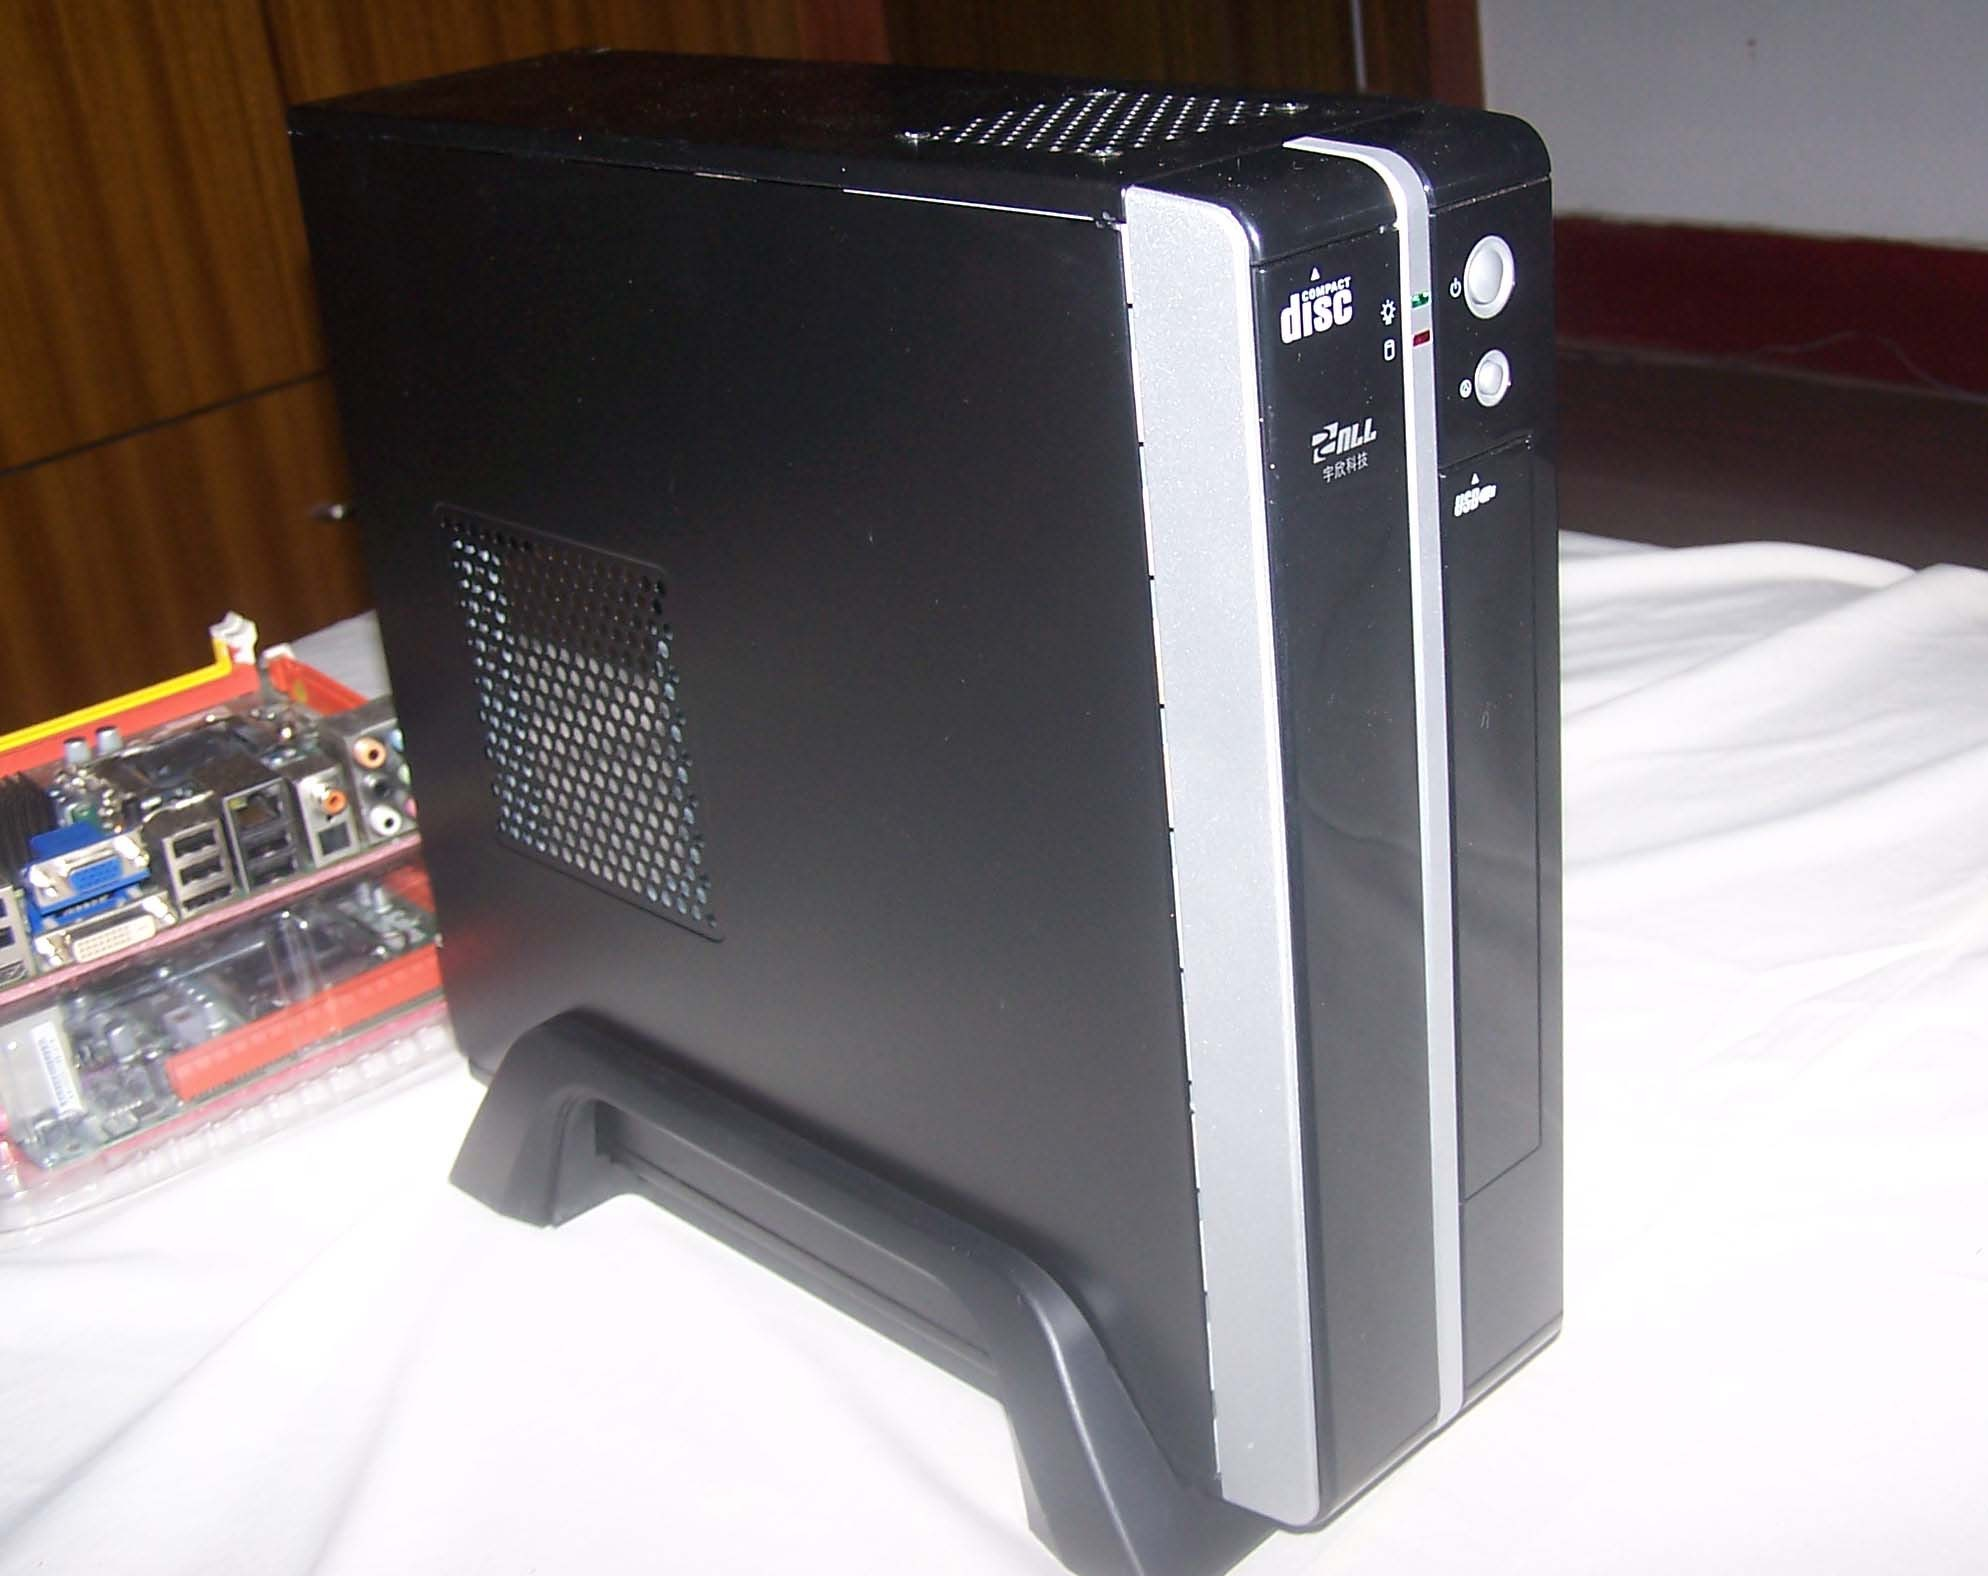 AOpenS190 custom version rated 180W power supply Mini ITX case